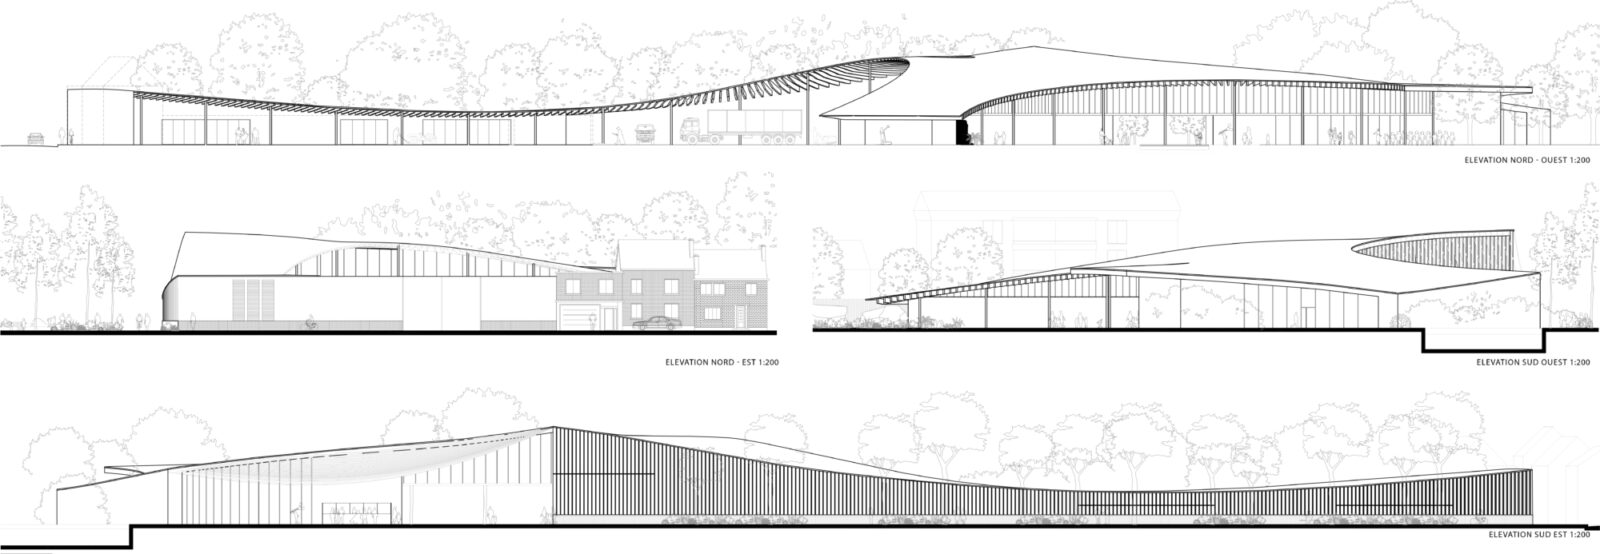 Elevations and Sections of of New Entrance Building